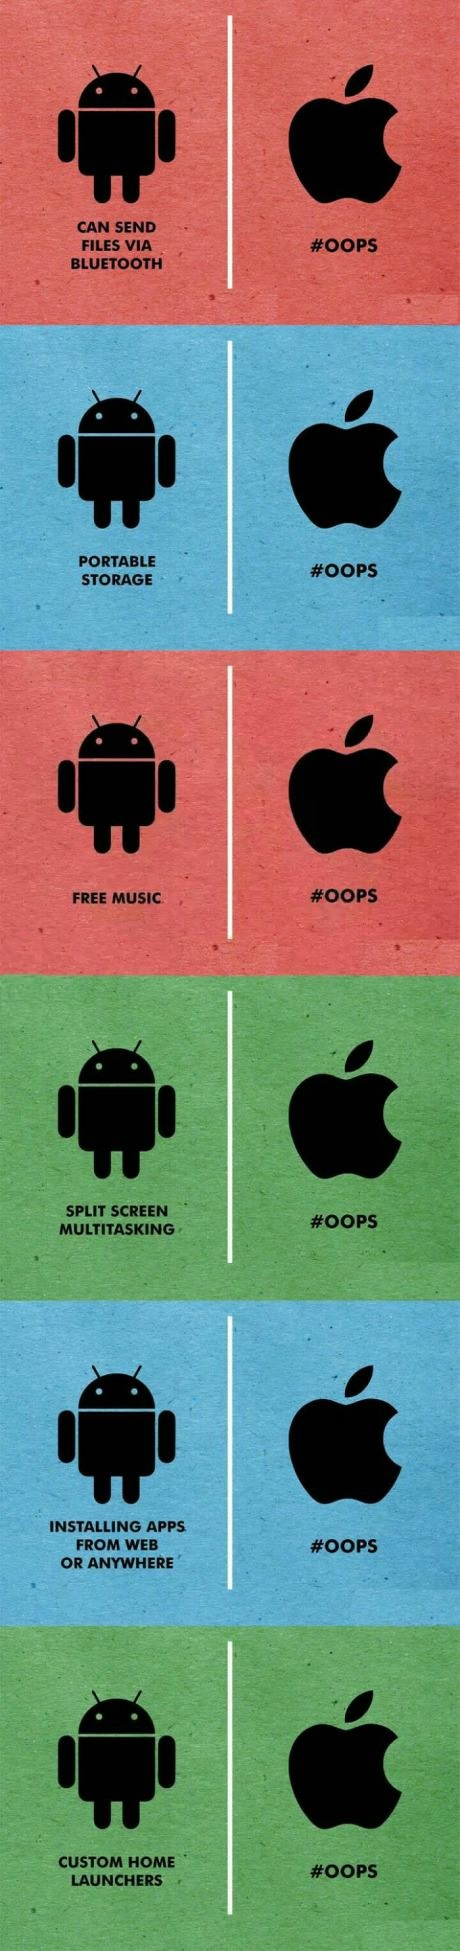 iphone-vs-android-features